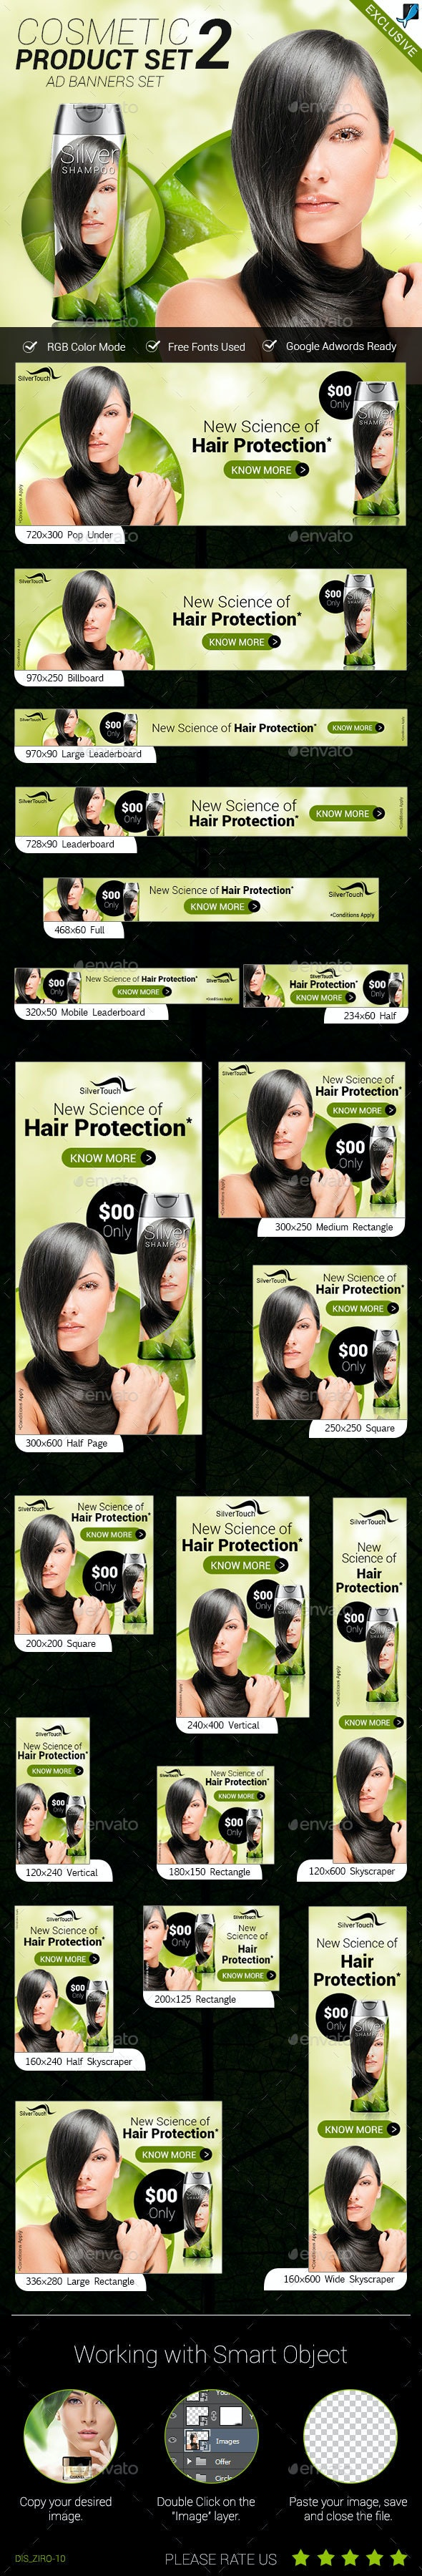 Cosmetic Product  Ad Banners Set 2 - Banners & Ads Web Elements